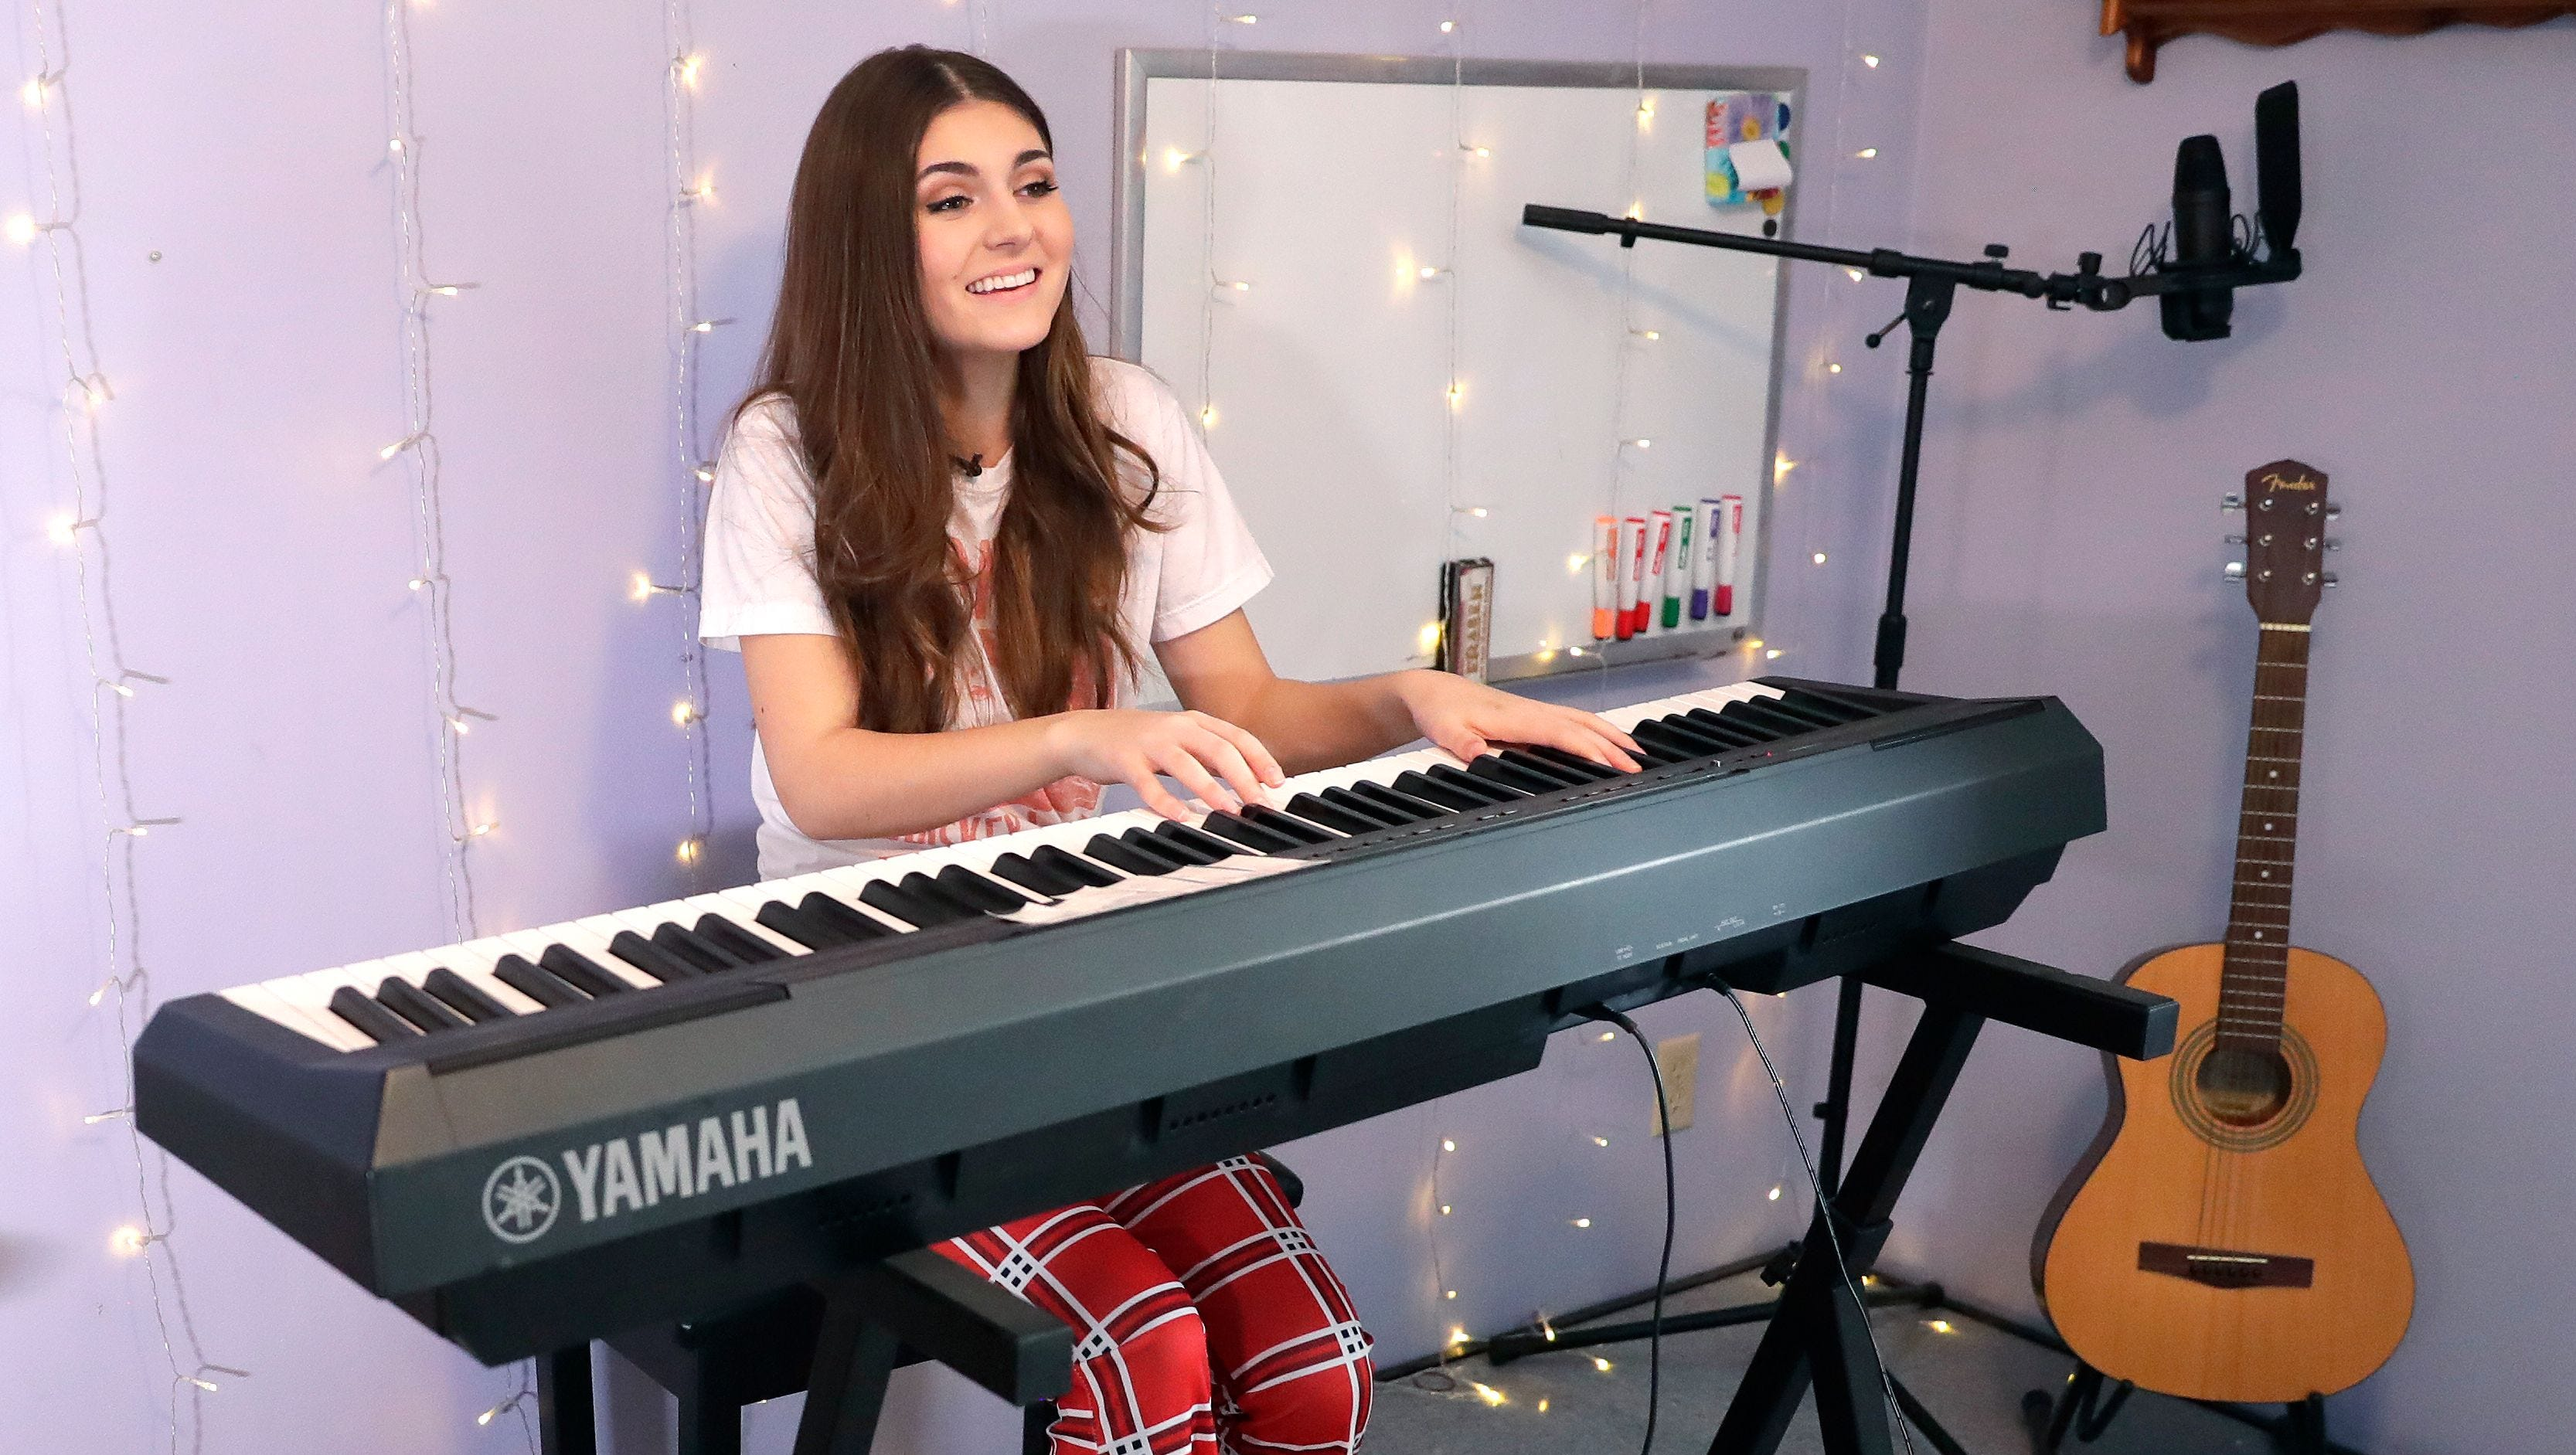 Wisconsin teen singer on bullying and mental health: Franki Moscato has been bullied and excluded. Now she reaches out through her songs